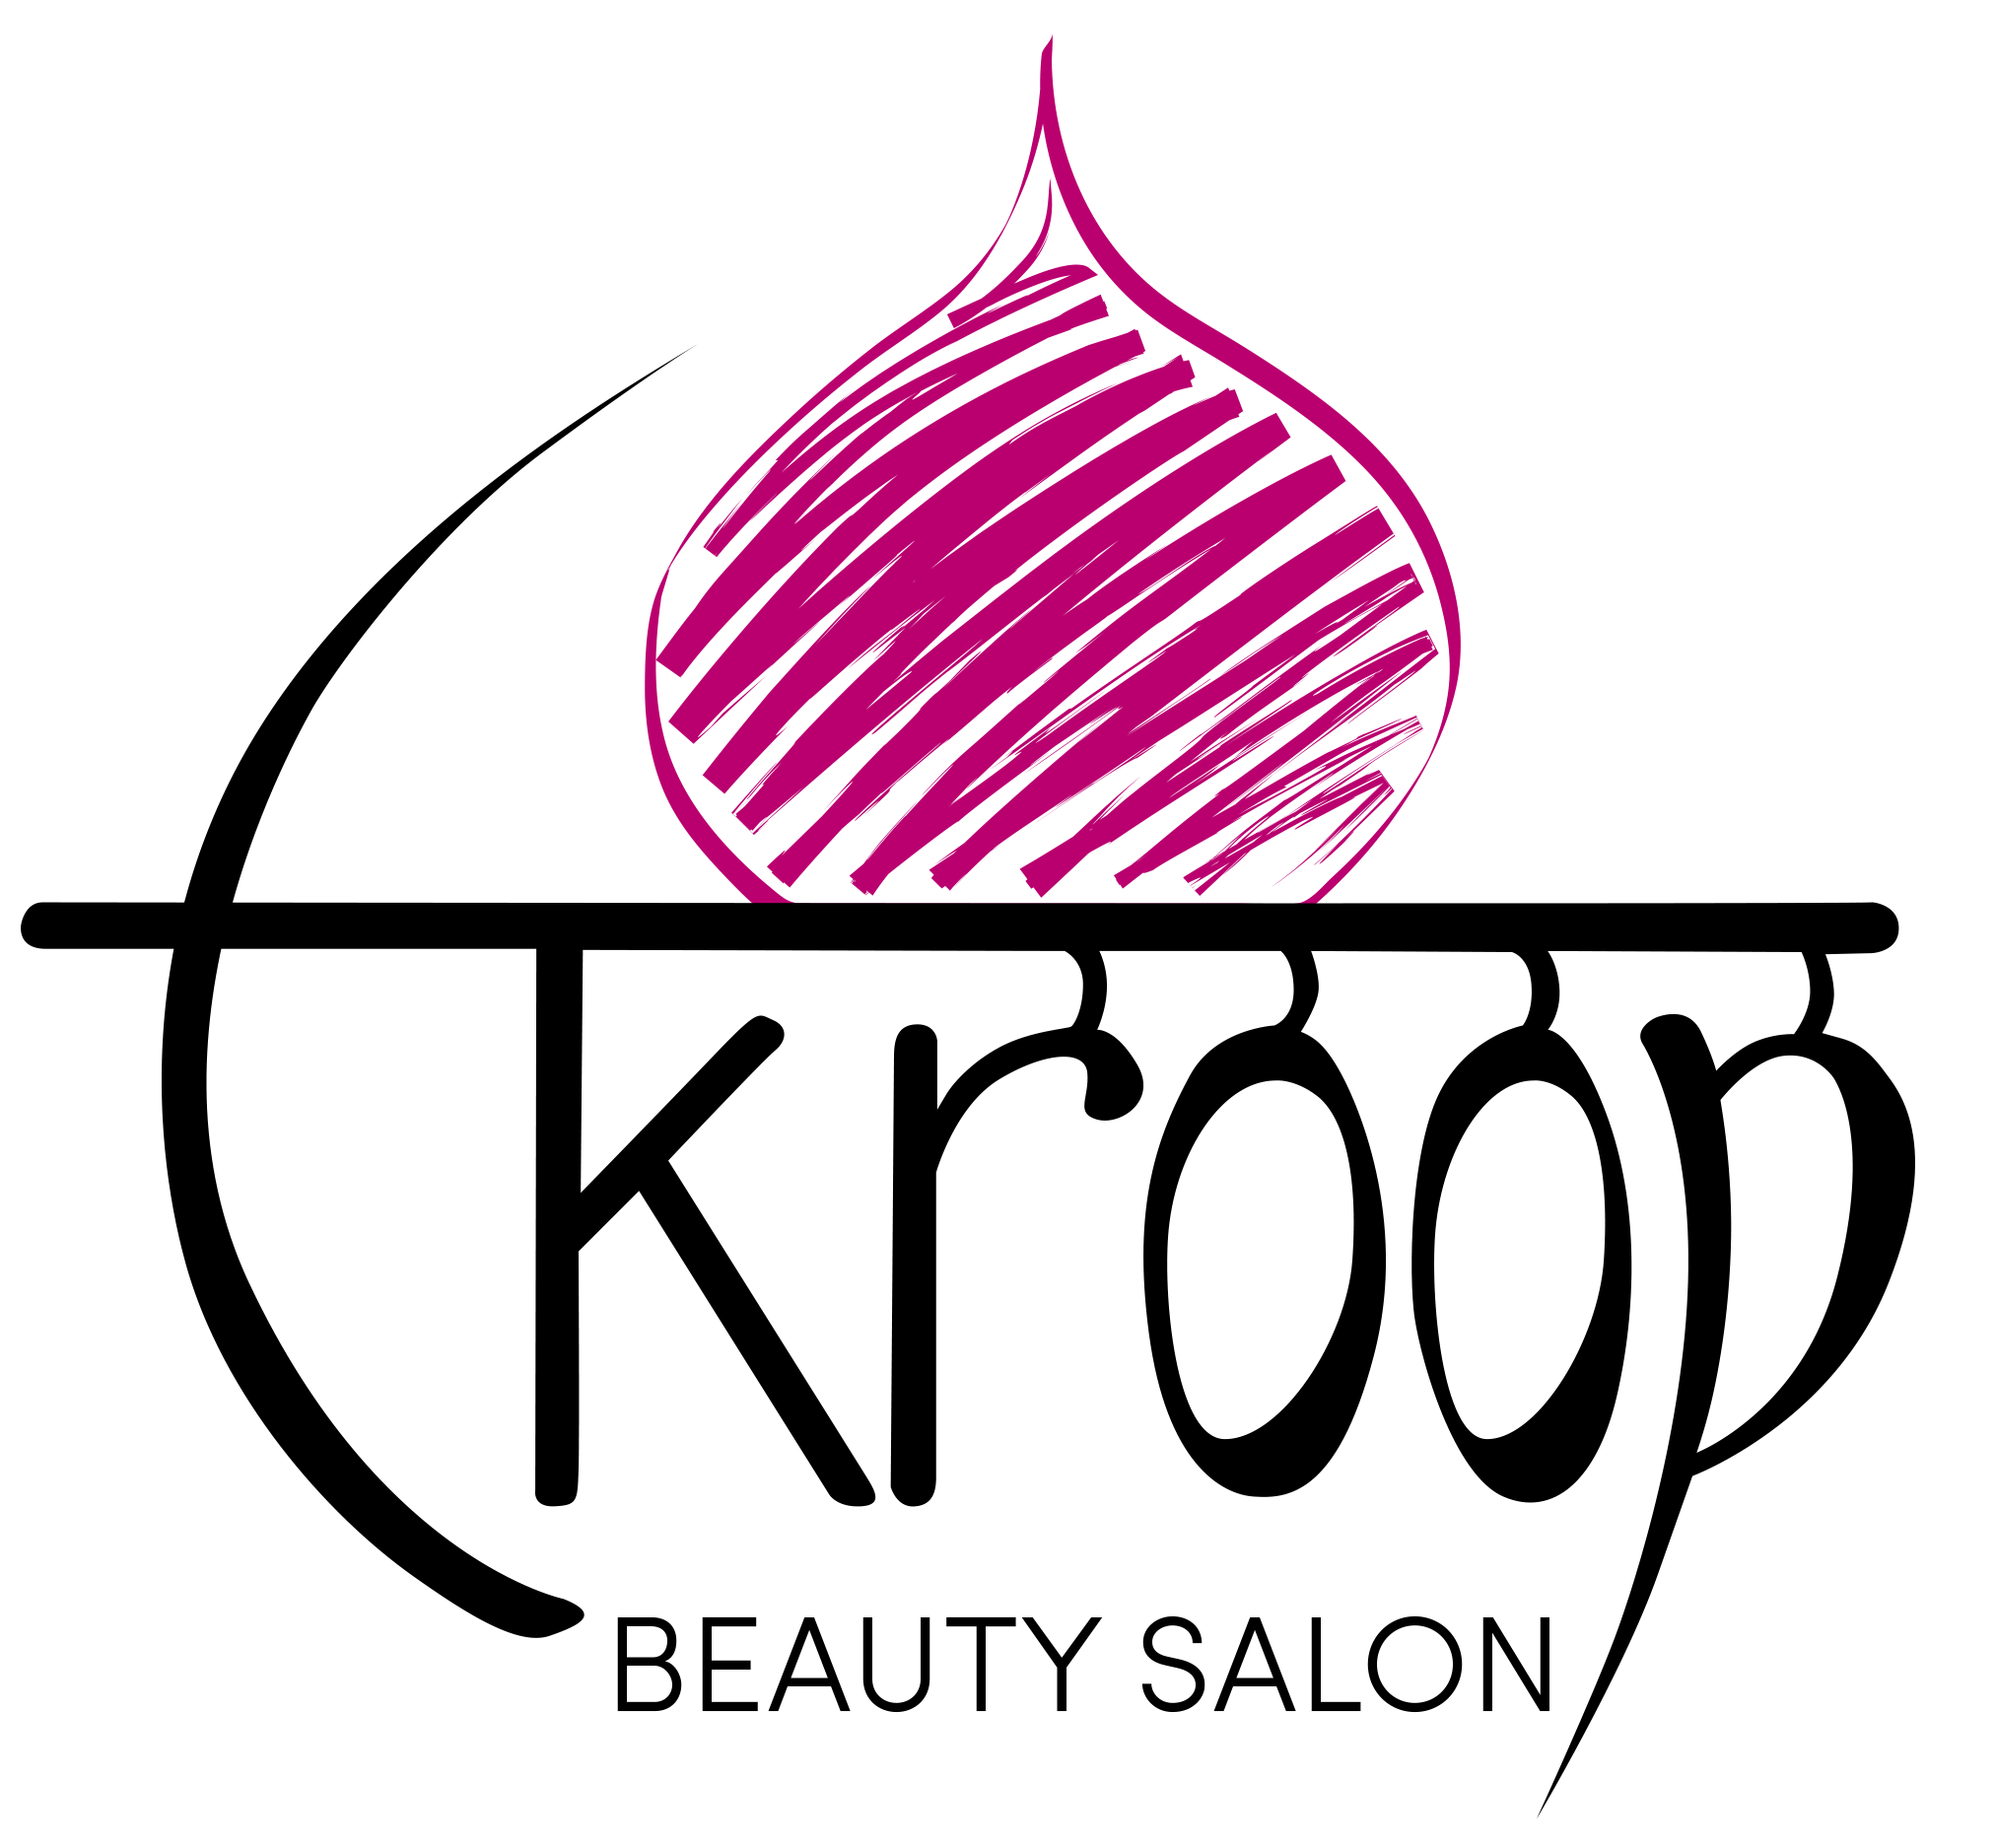 Ekroop Beauty Salon